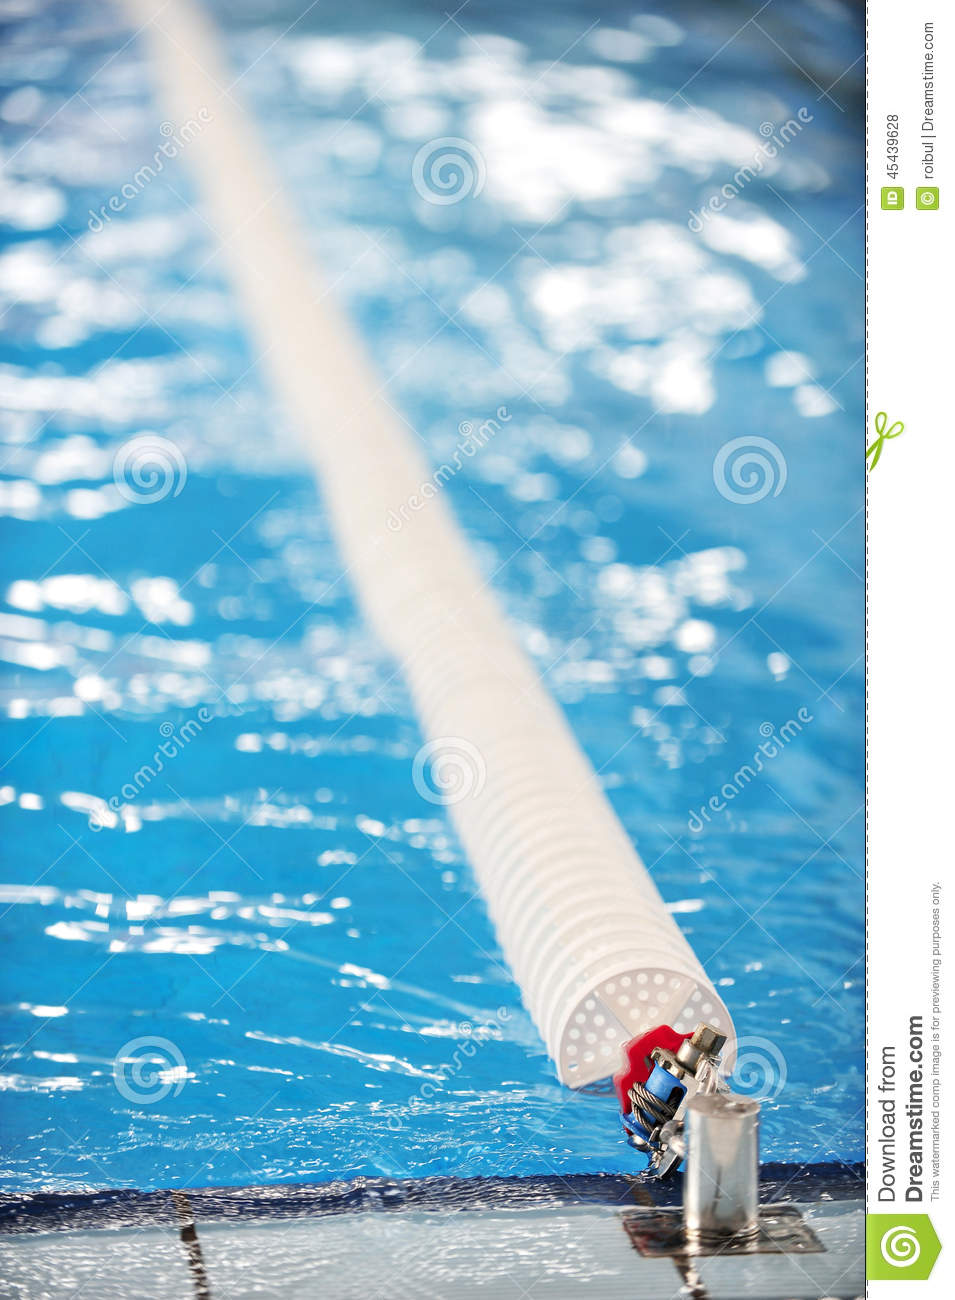 Olympic Swimming Pool Lane Divider Stock Photo Image 45439628